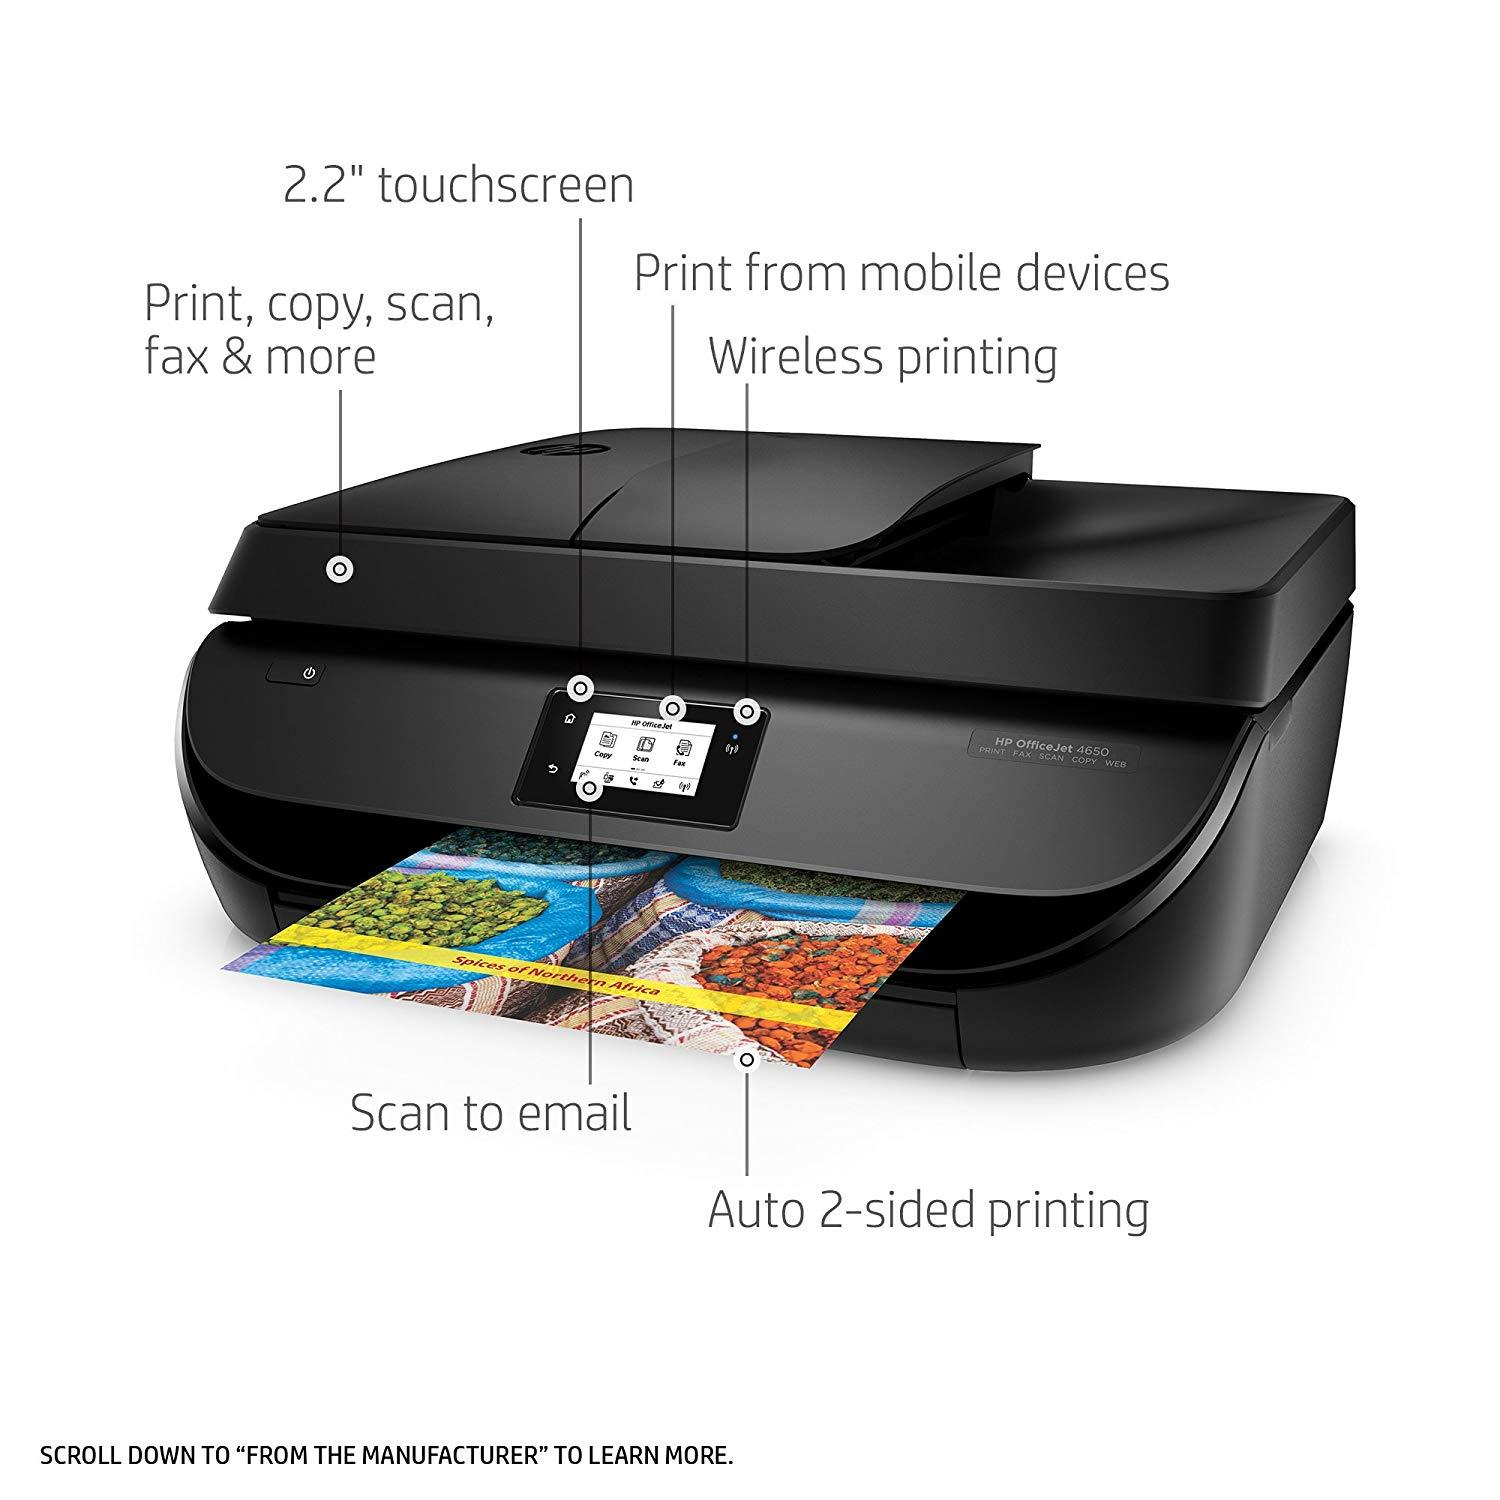 Refurbished HP OfficeJet 4650 All-in-One Wireless Printer with Mobile Printing, Instant Ink ready (F1J03A)